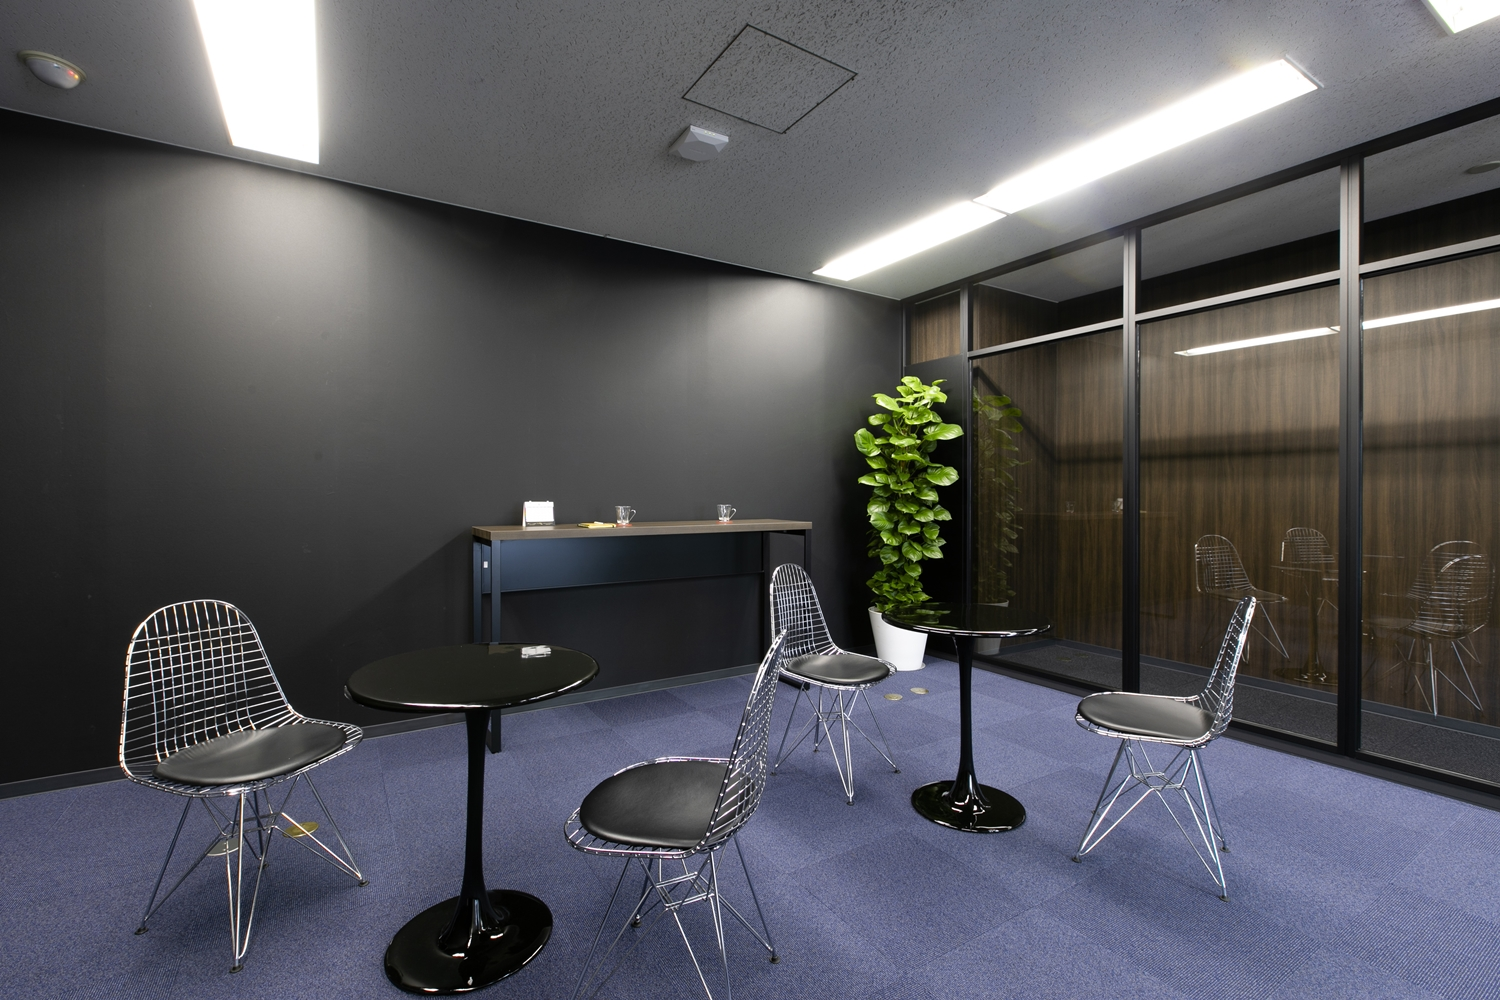 Refresh Room (Lounge) at Roppongi